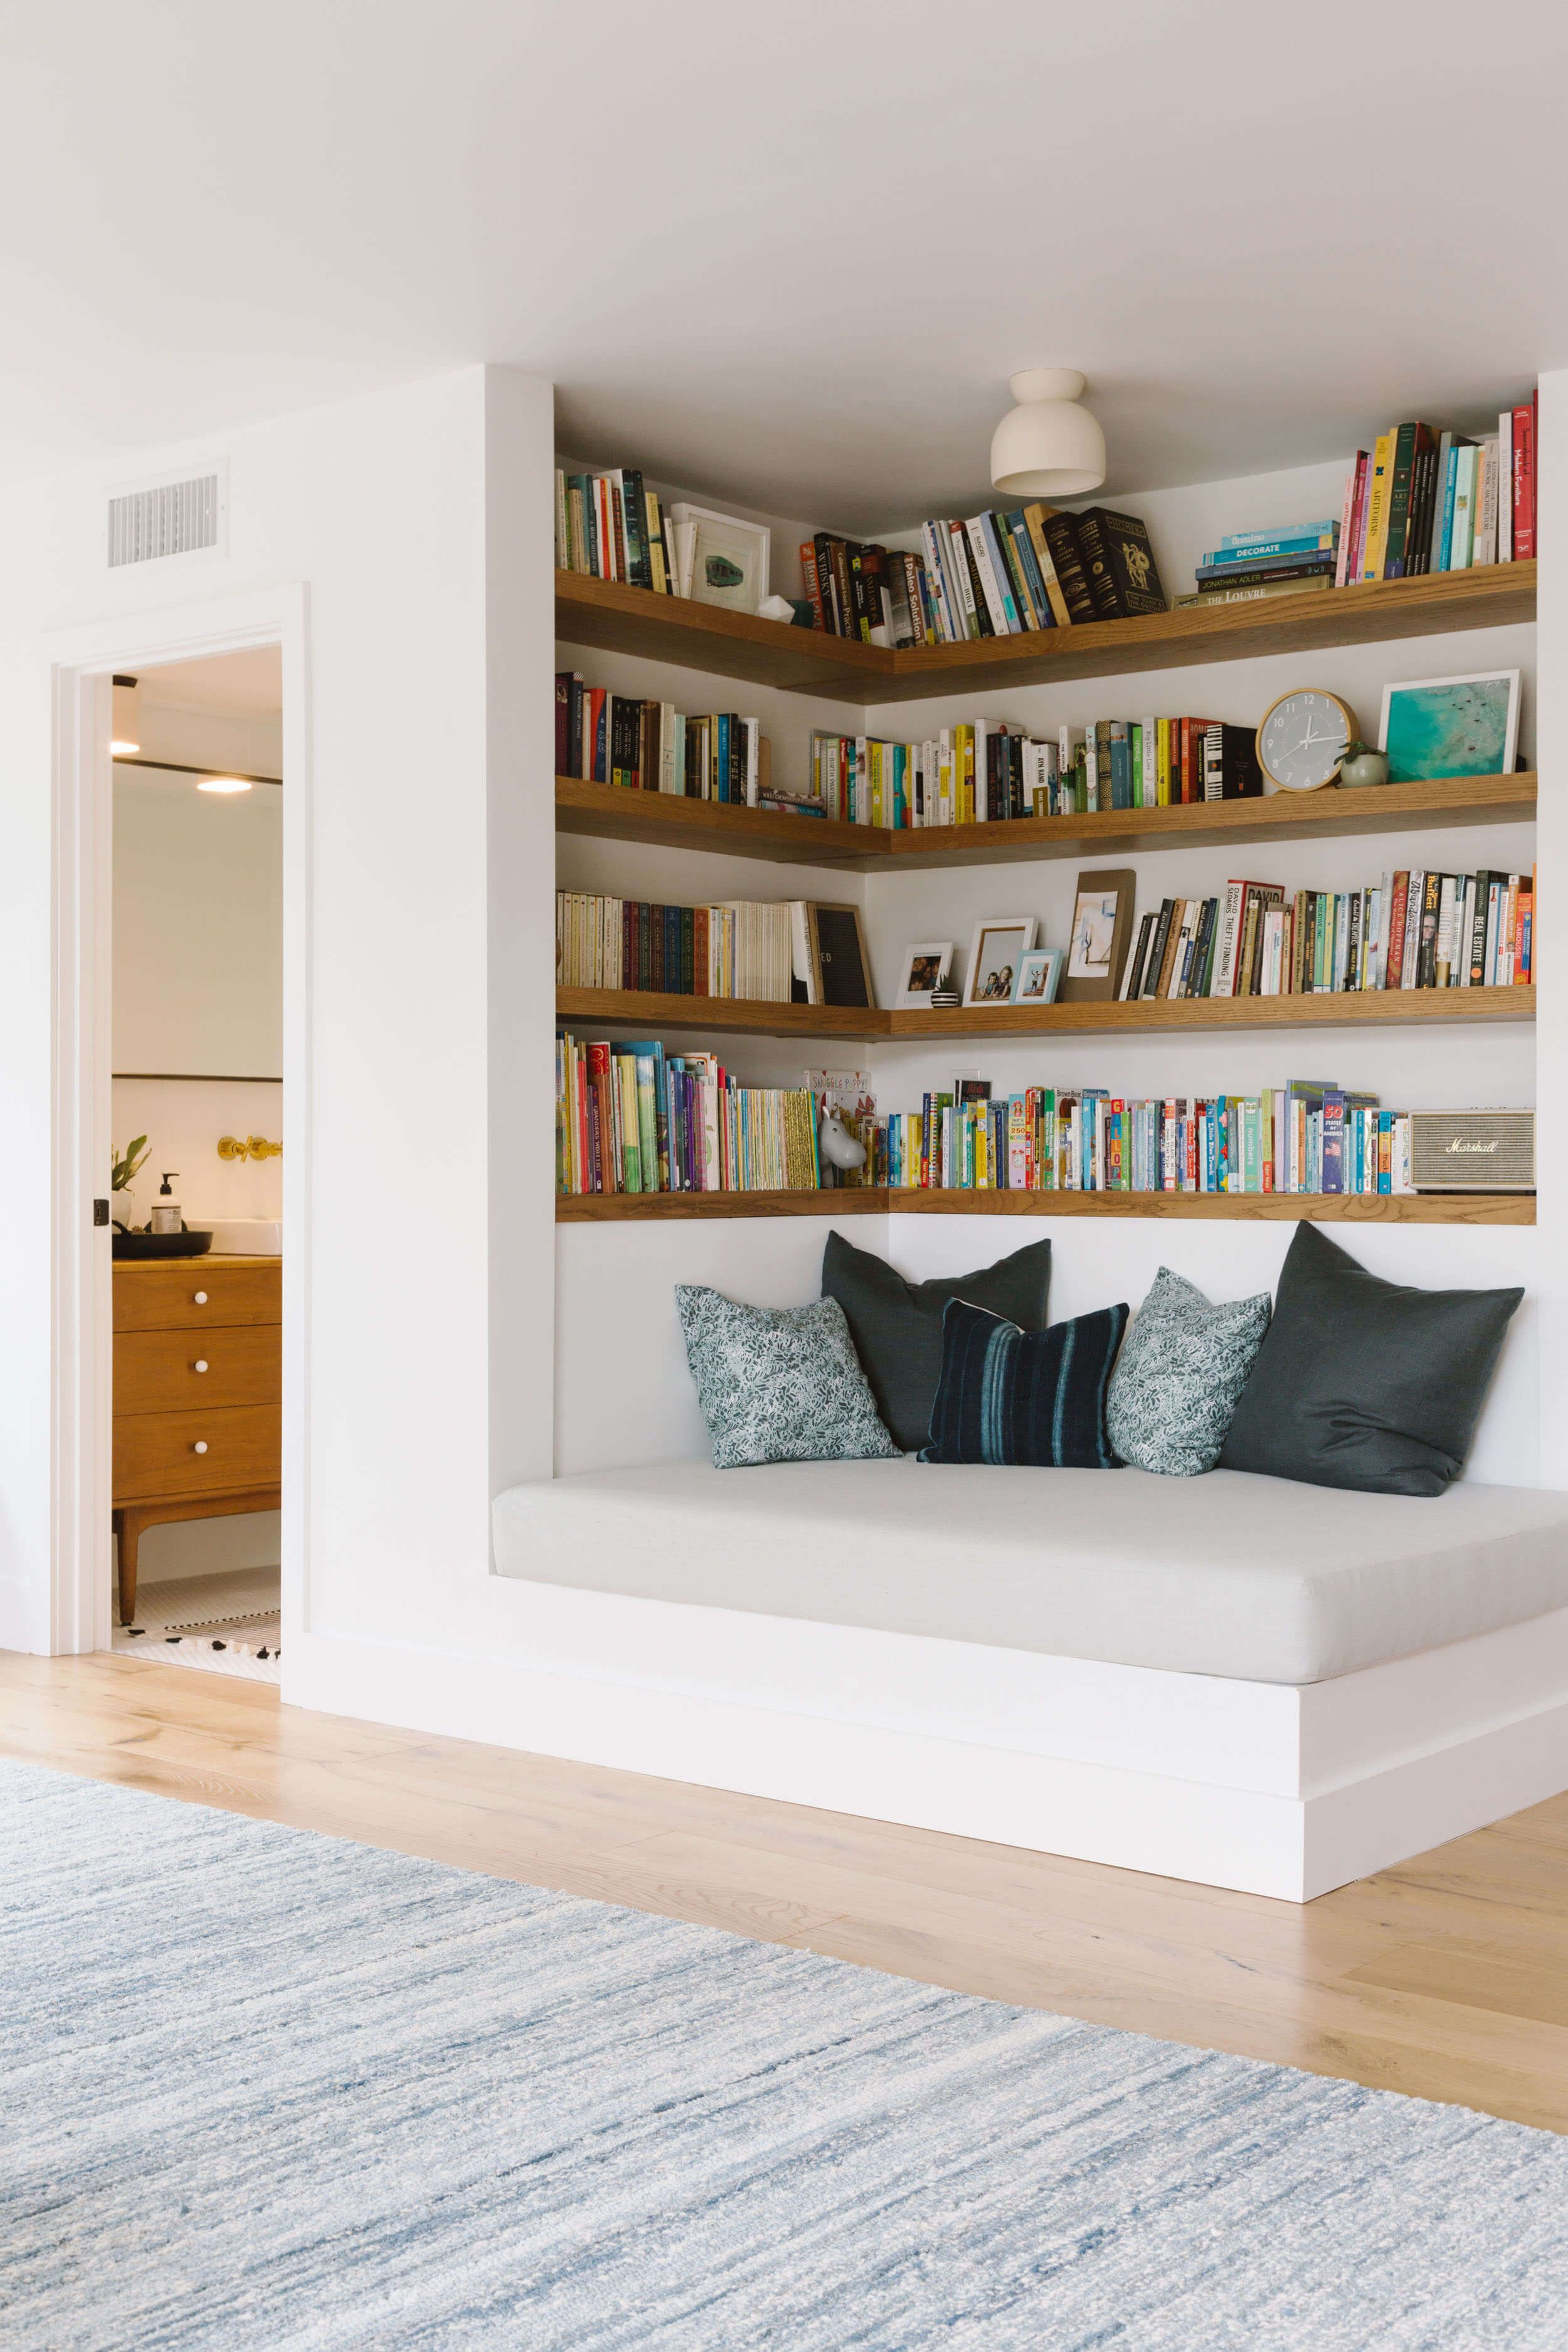 21 Incredibly Cozy Reading Nook Ideas To Inspire Serious Snuggle